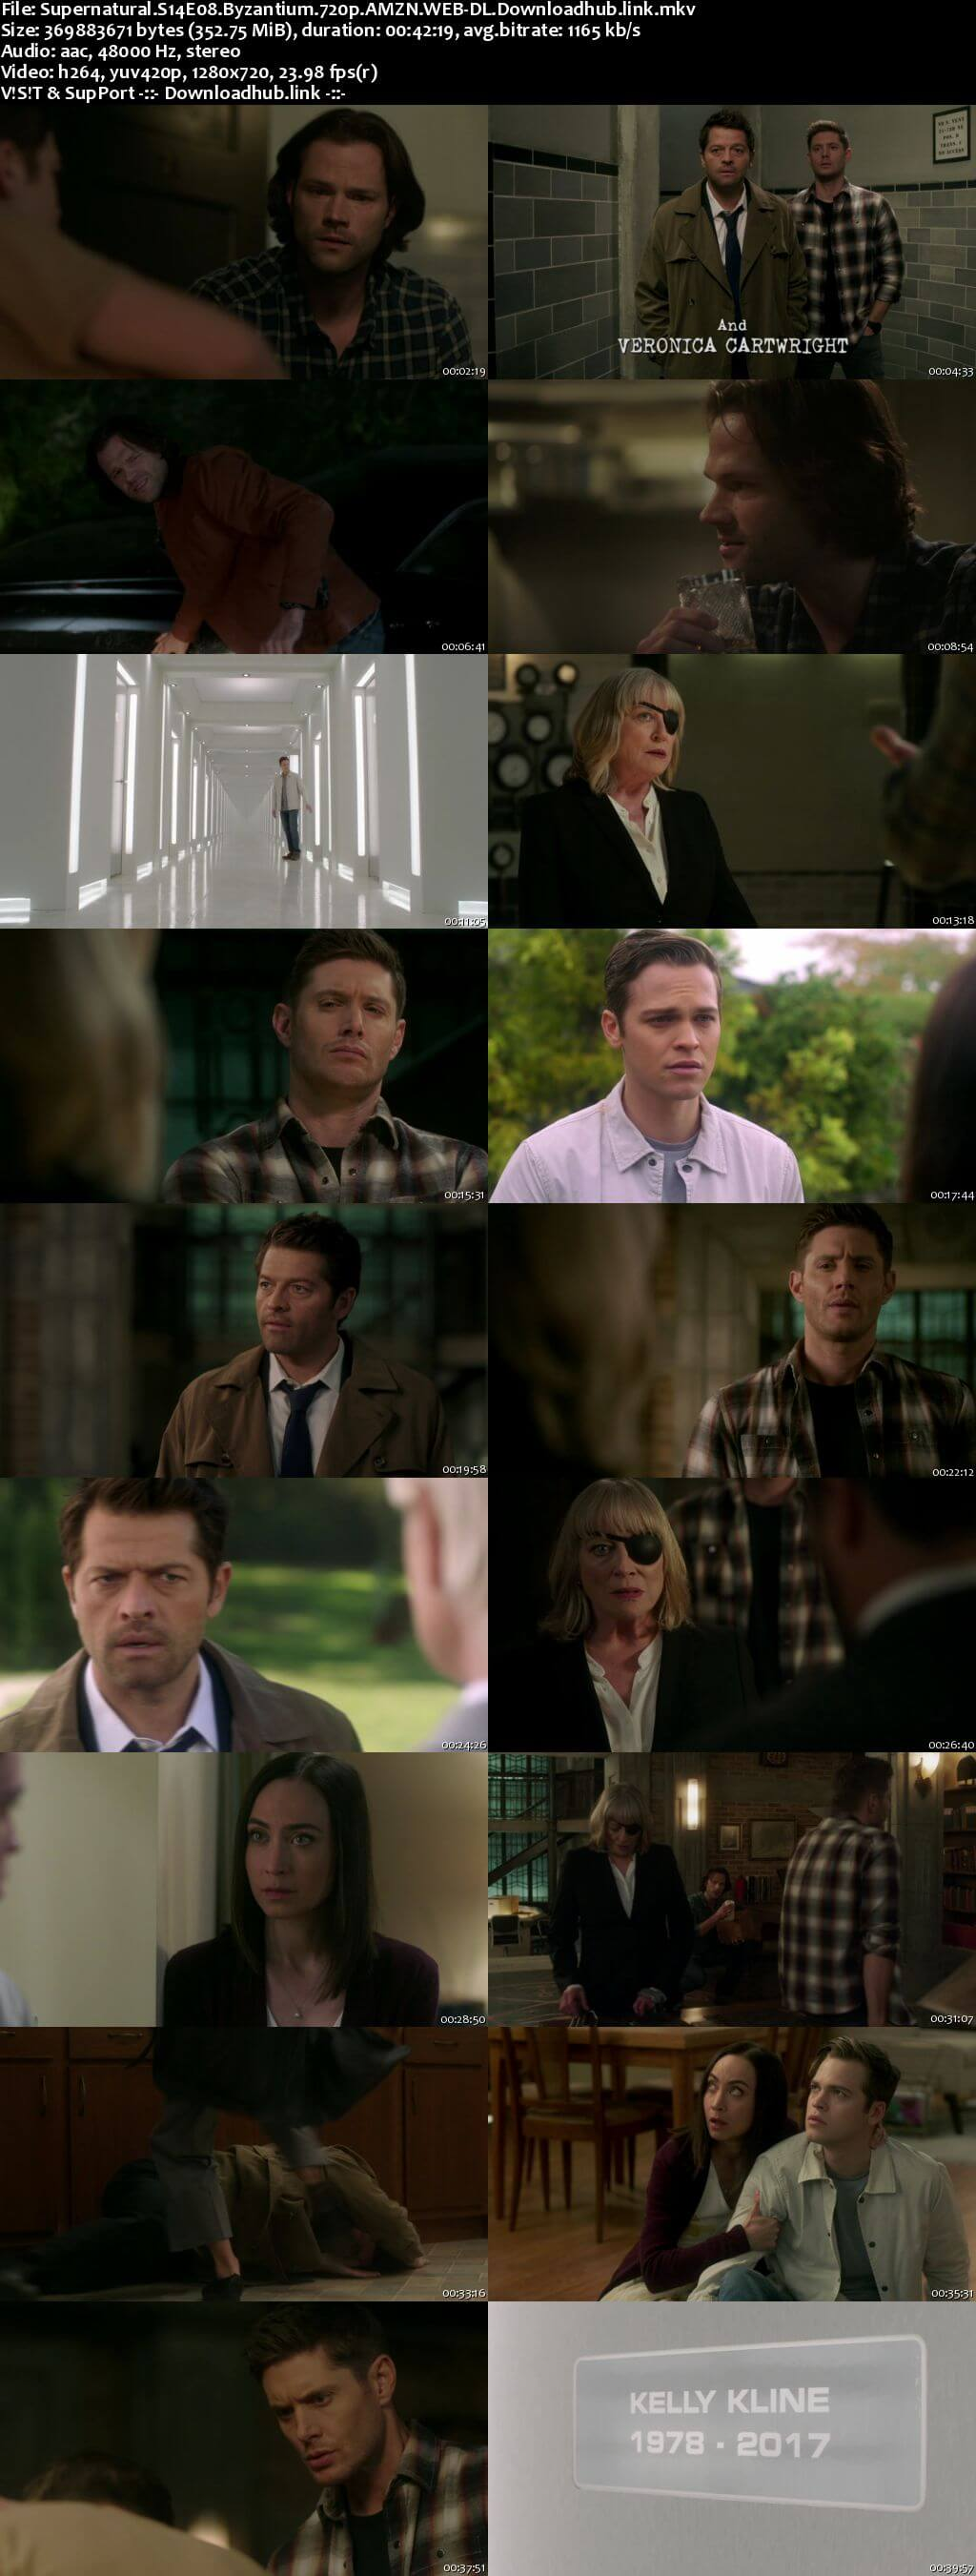 Supernatural S14E08 350MB AMZN Web-DL 720p ESubs